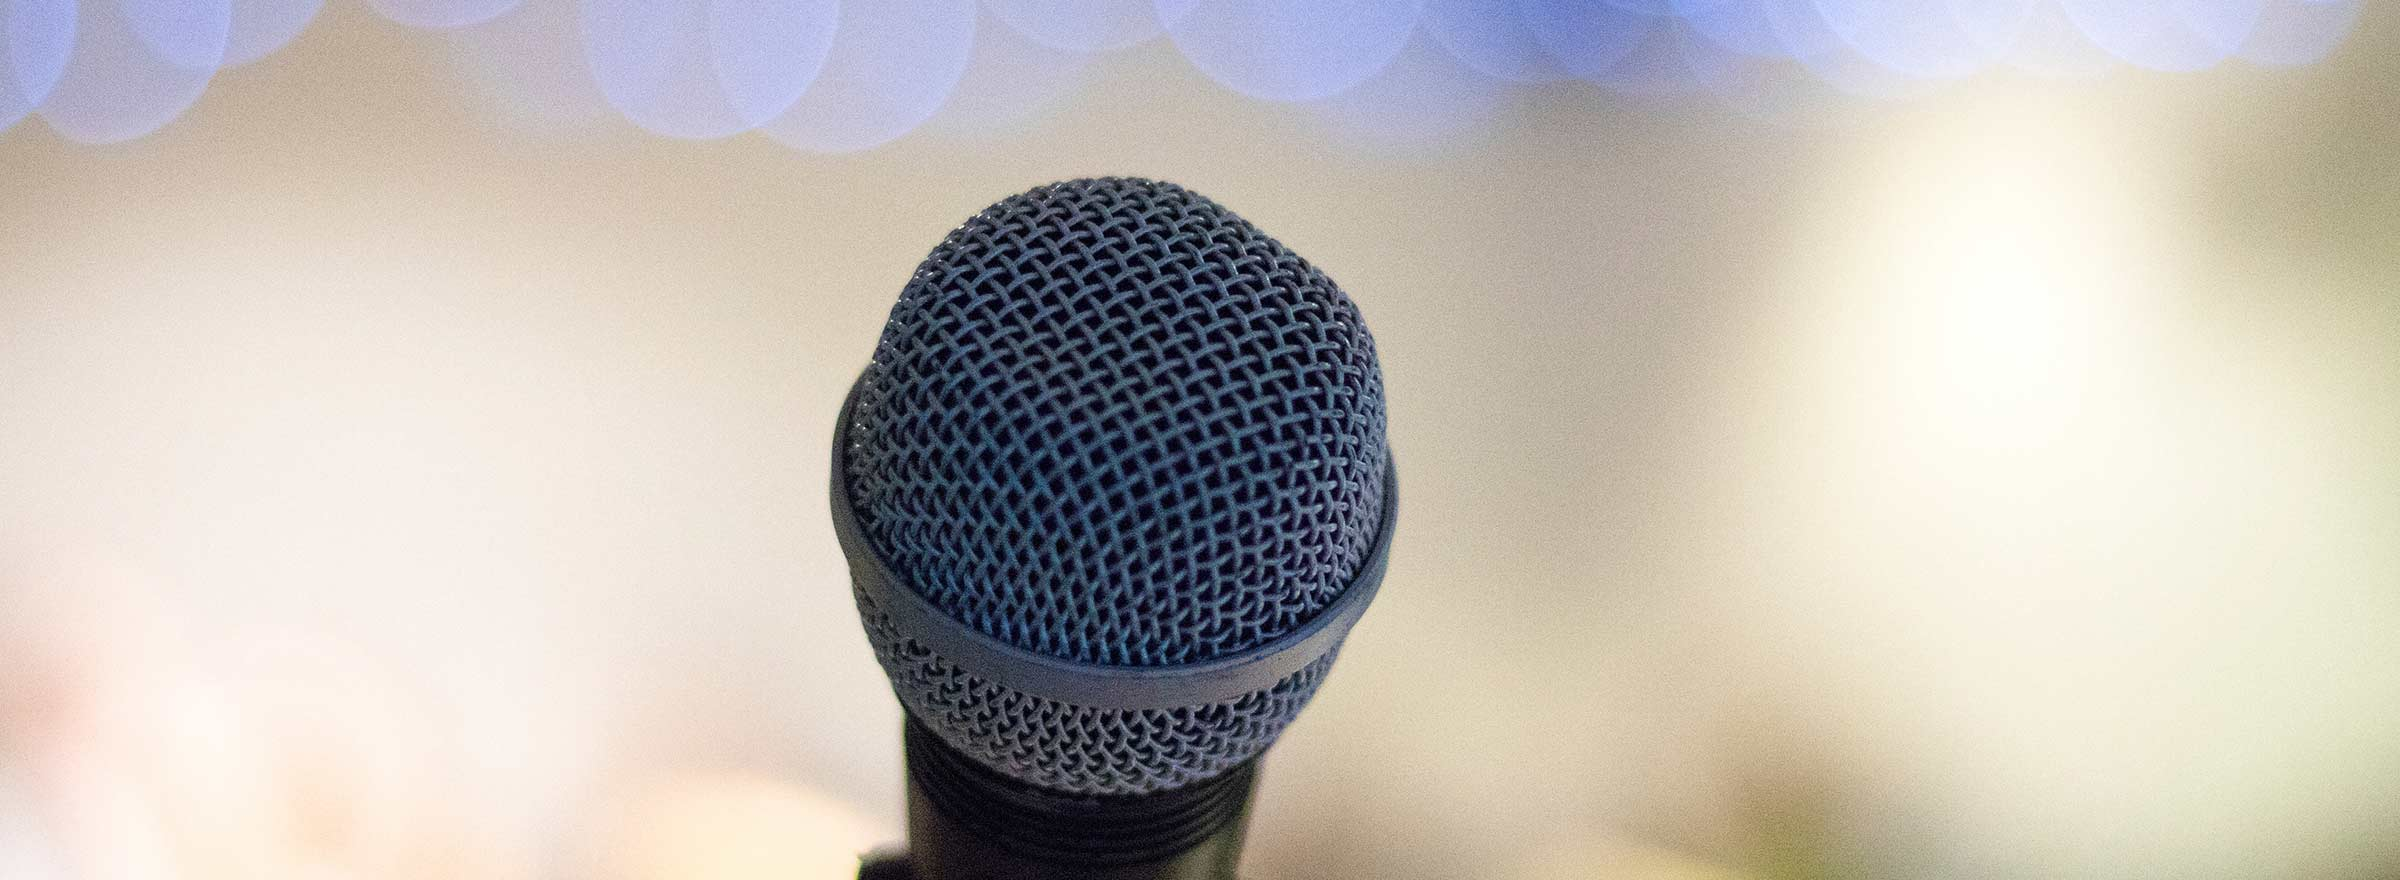 picture of a microphone, representing how a nonprofit used Microsoft Azure to help people with hearing impairments